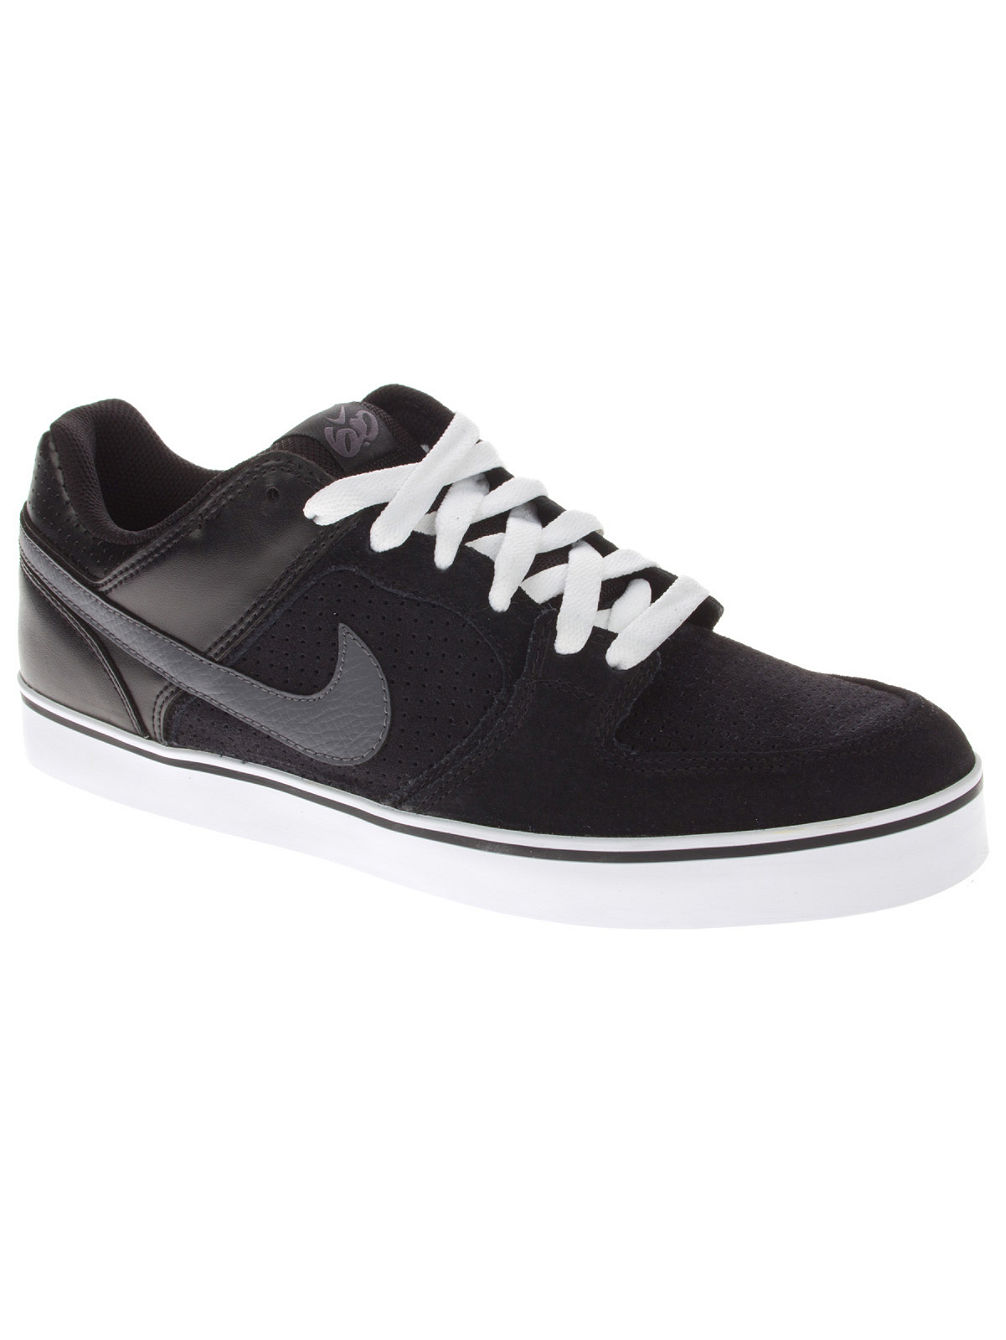 a08eea266d84 Buy Nike 6.0 Melee online at Blue Tomato